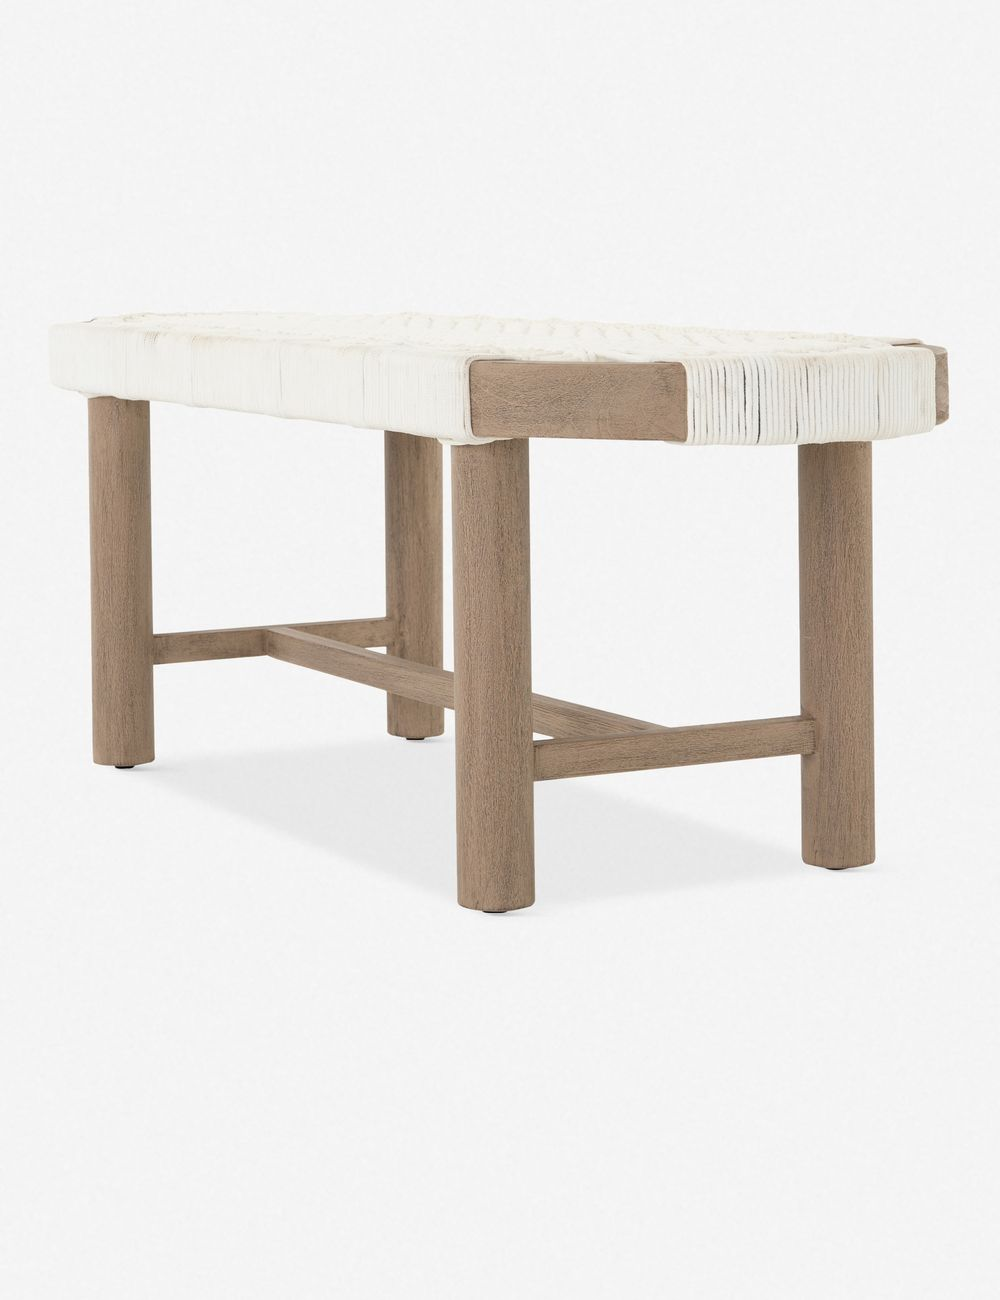 Arina Indoor / Outdoor Bench, Washed Brown